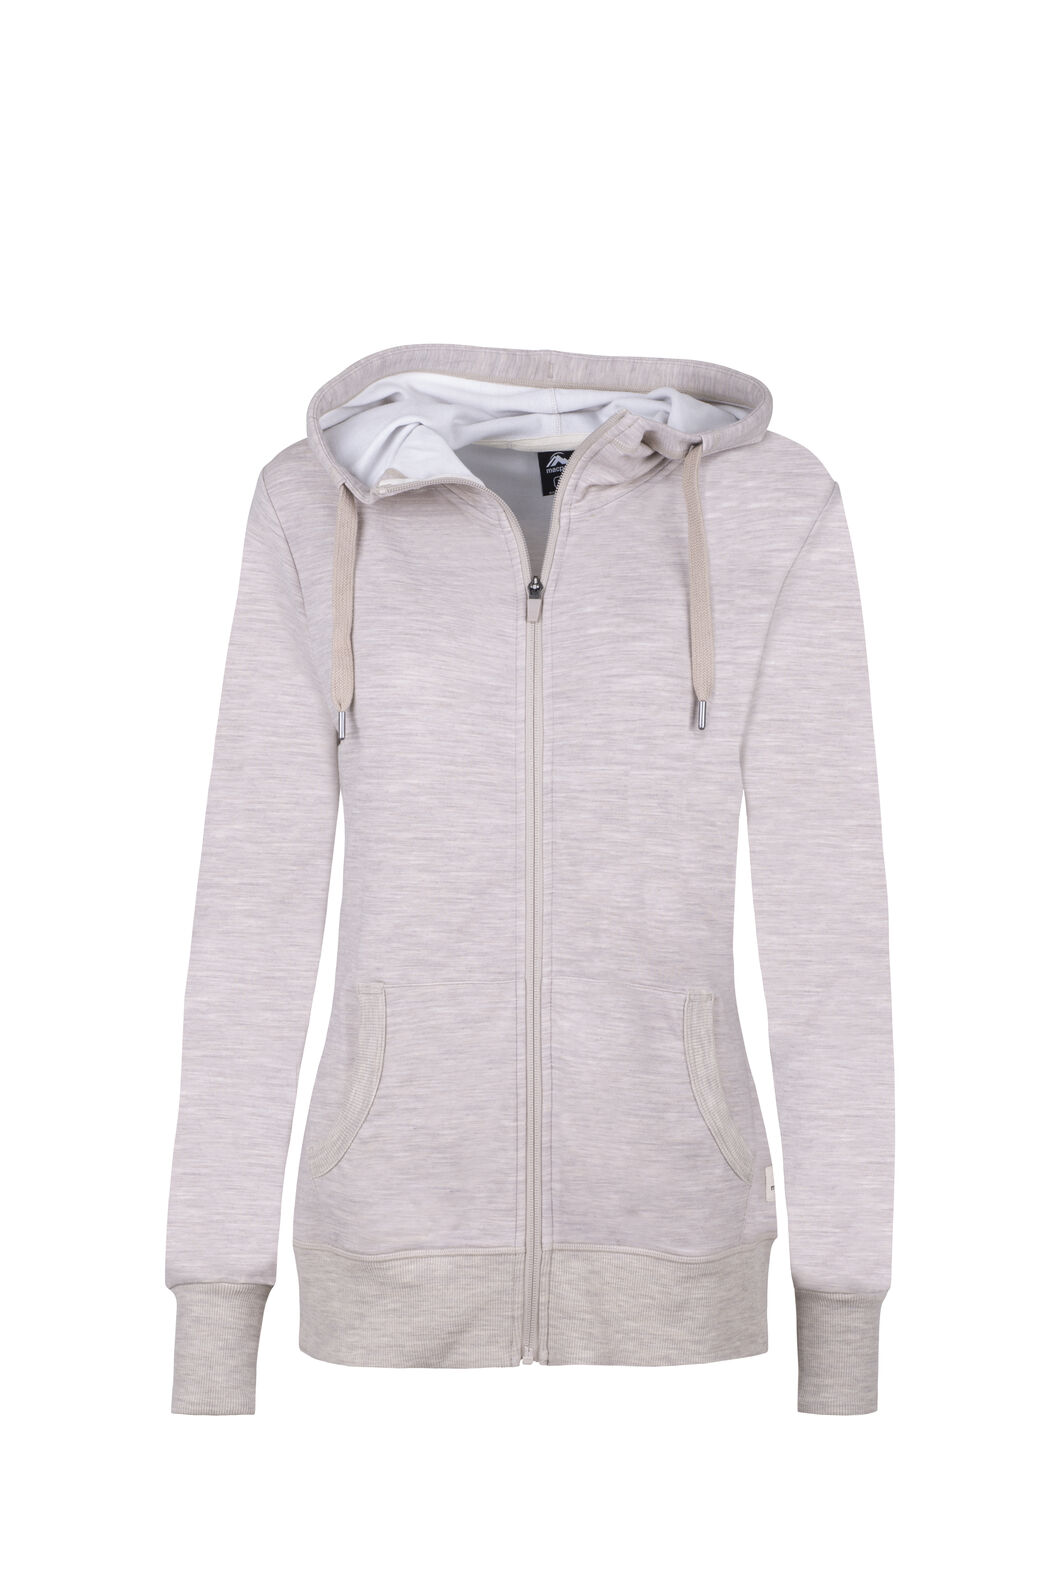 Macpac Dawn Hoody - Women's, Moonbeam Marle, hi-res